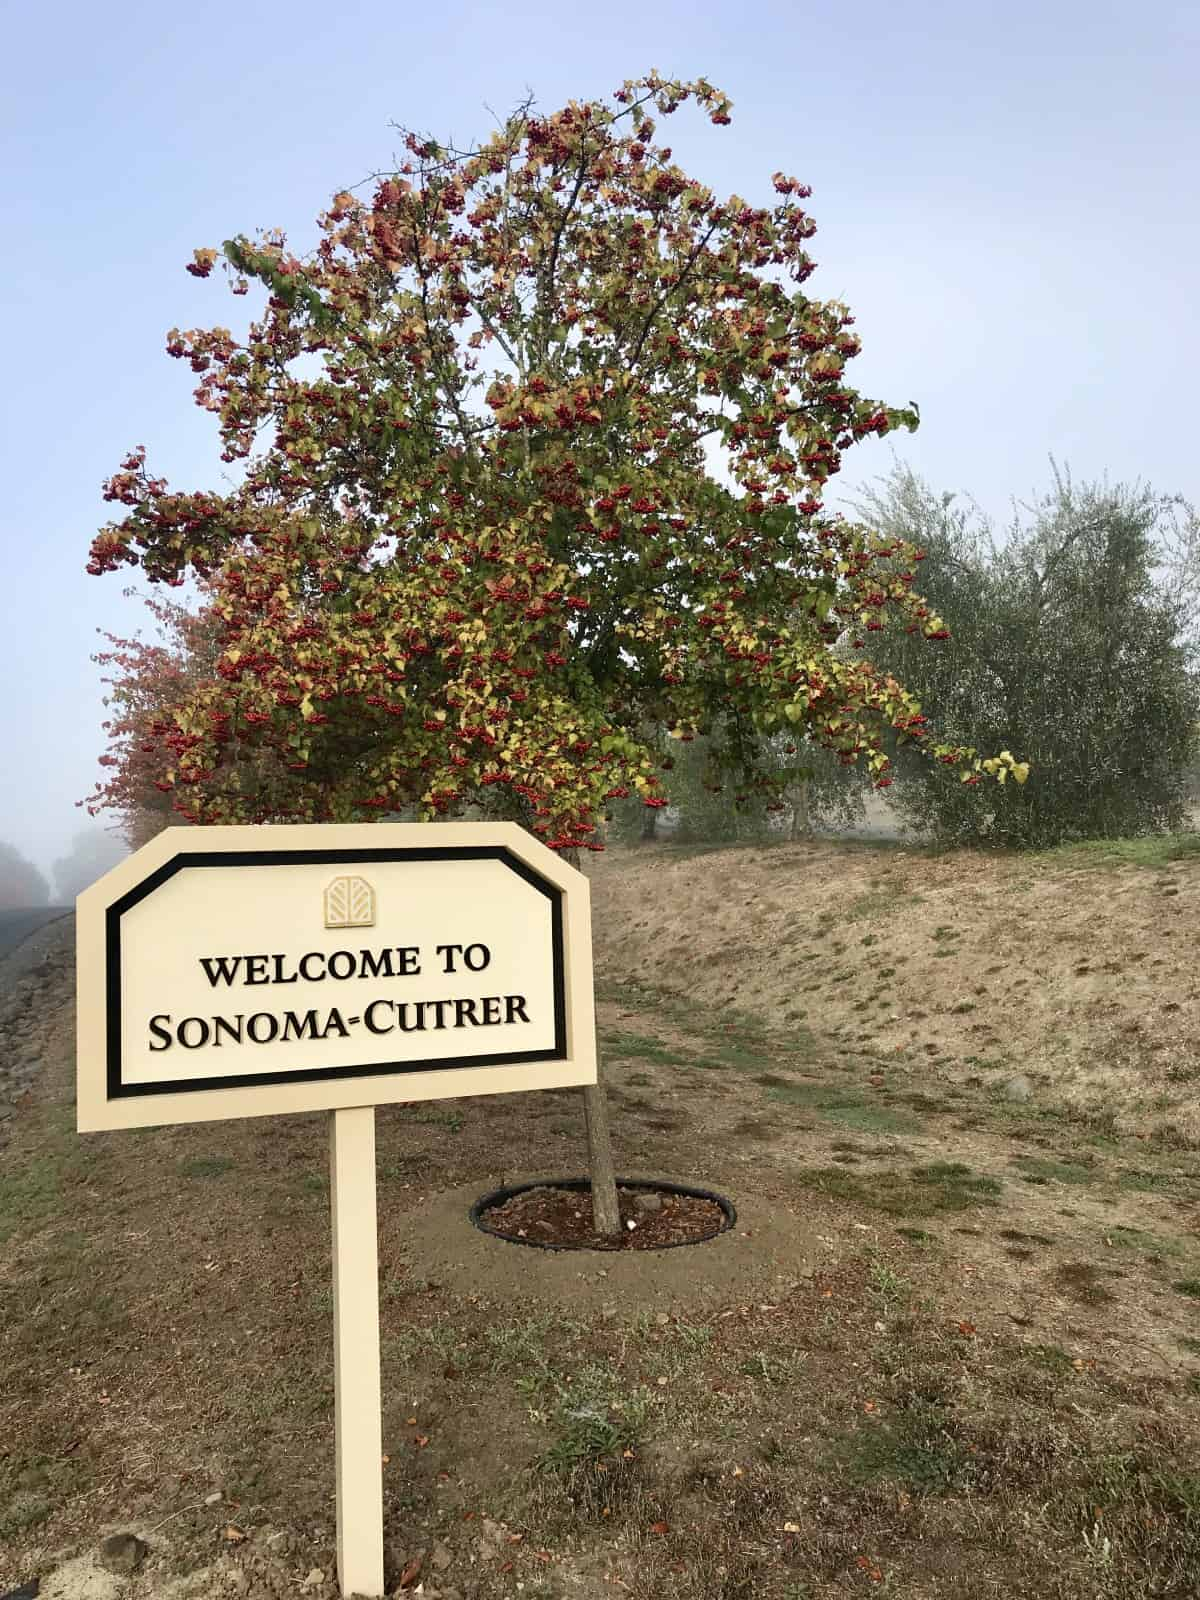 A foggy morning welcome to Sonoma-Cutrer